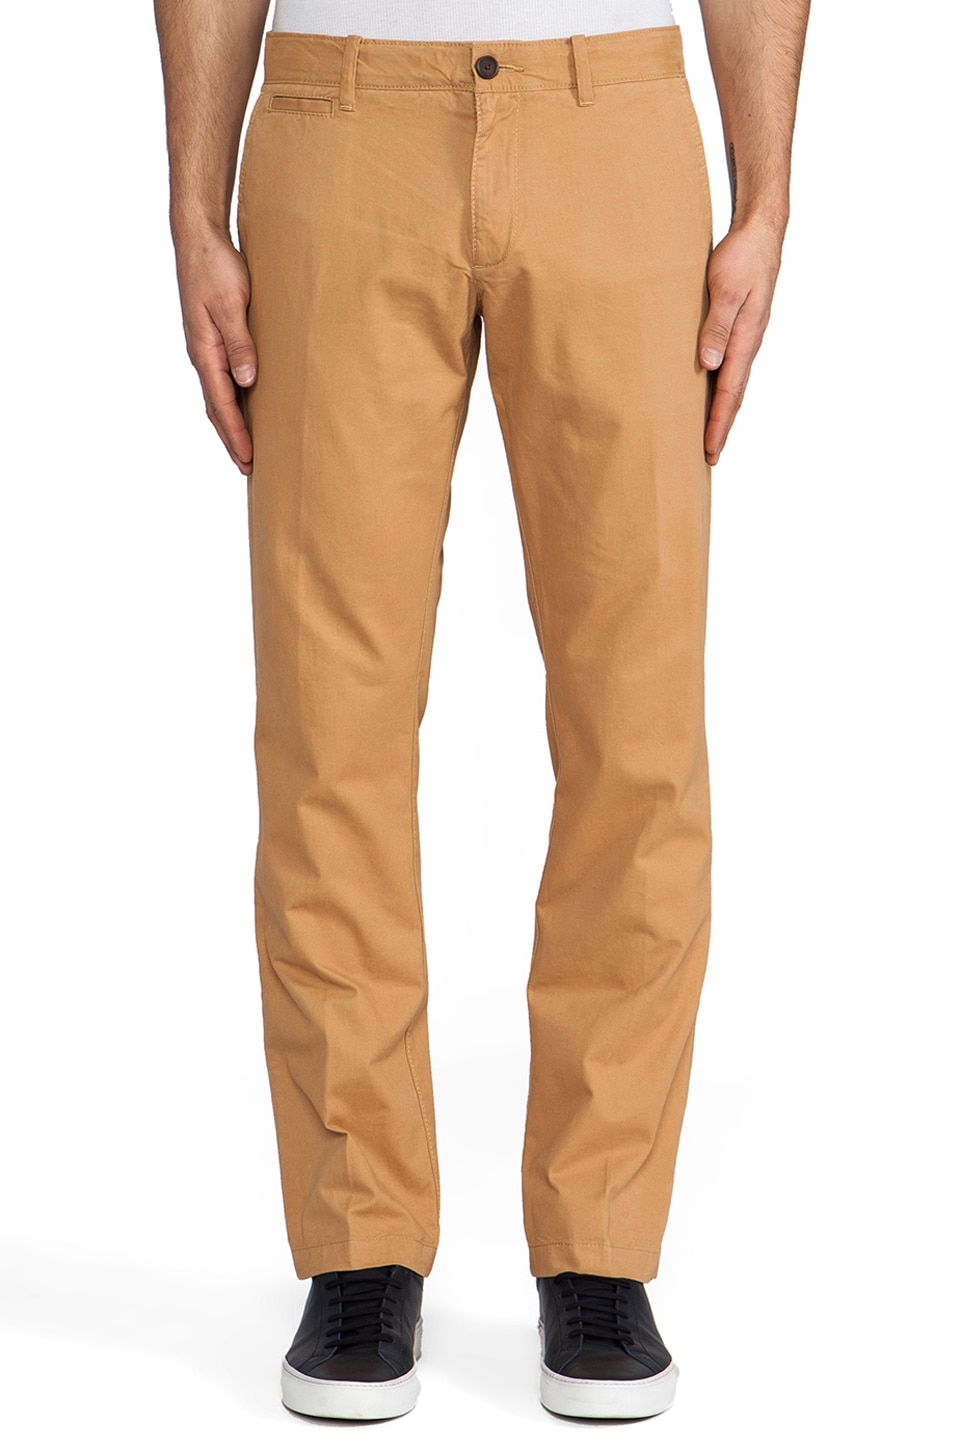 Penguin Straight Fit Chino in Golden Khaki